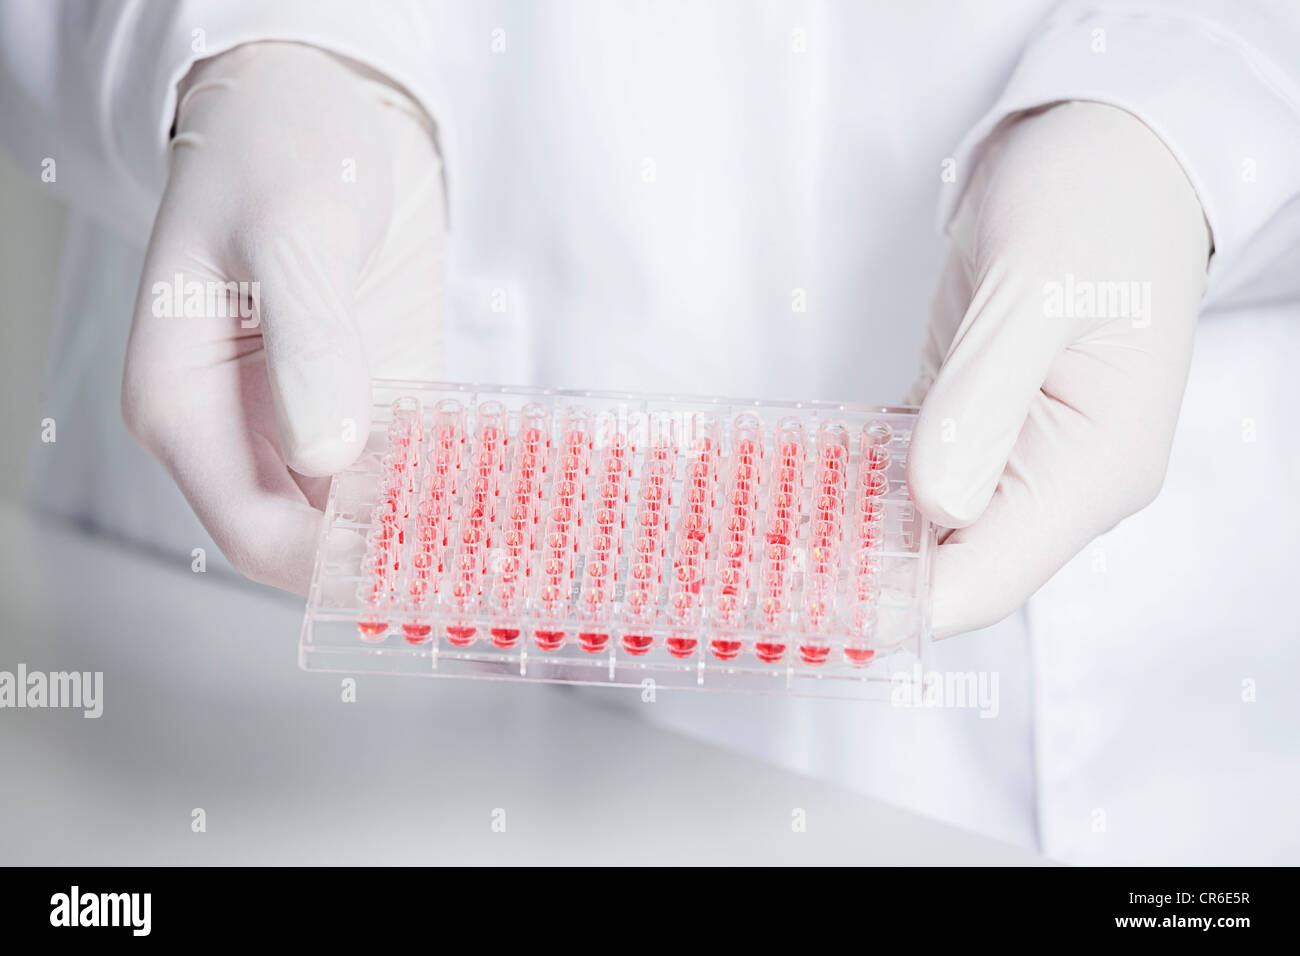 Germany, Bavaria, Munich, Scientist holding red liquid in test tray for medical research in laboratory - Stock Image